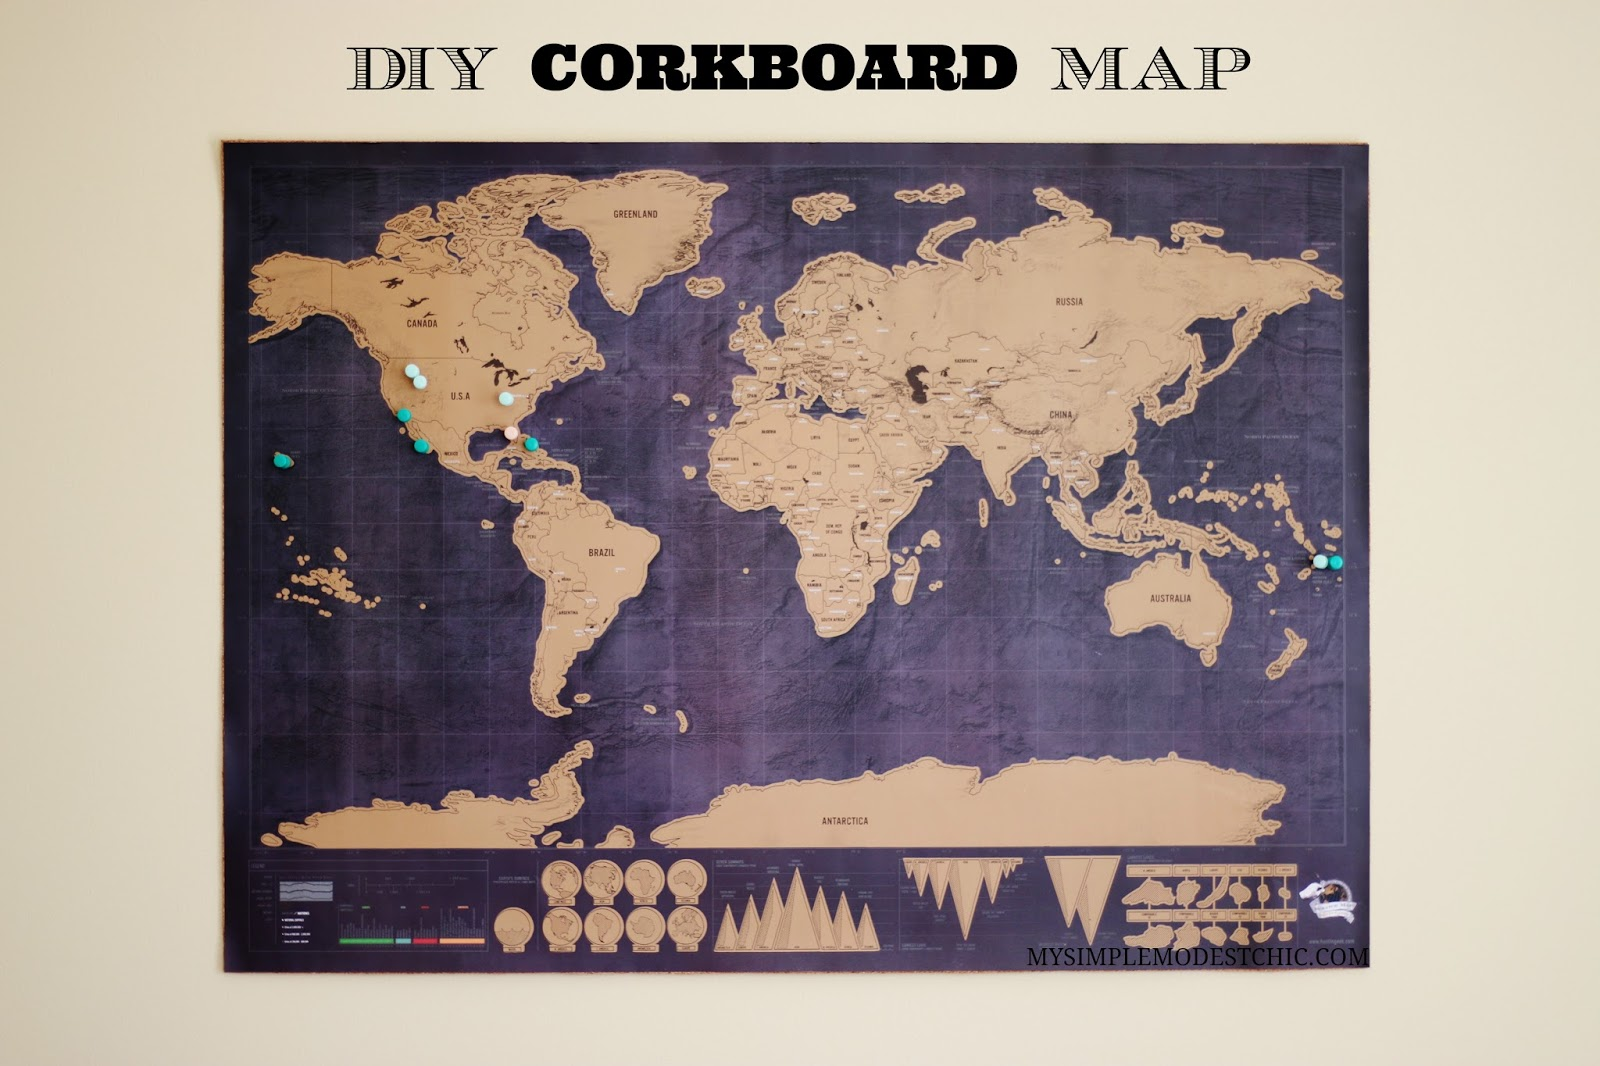 My simple modest chic easiest diy cork board map easiest diy cork board map ages ago i bought this darling scratch off map that i thought kyle would enjoy in his office but of course i didnt do gumiabroncs Gallery